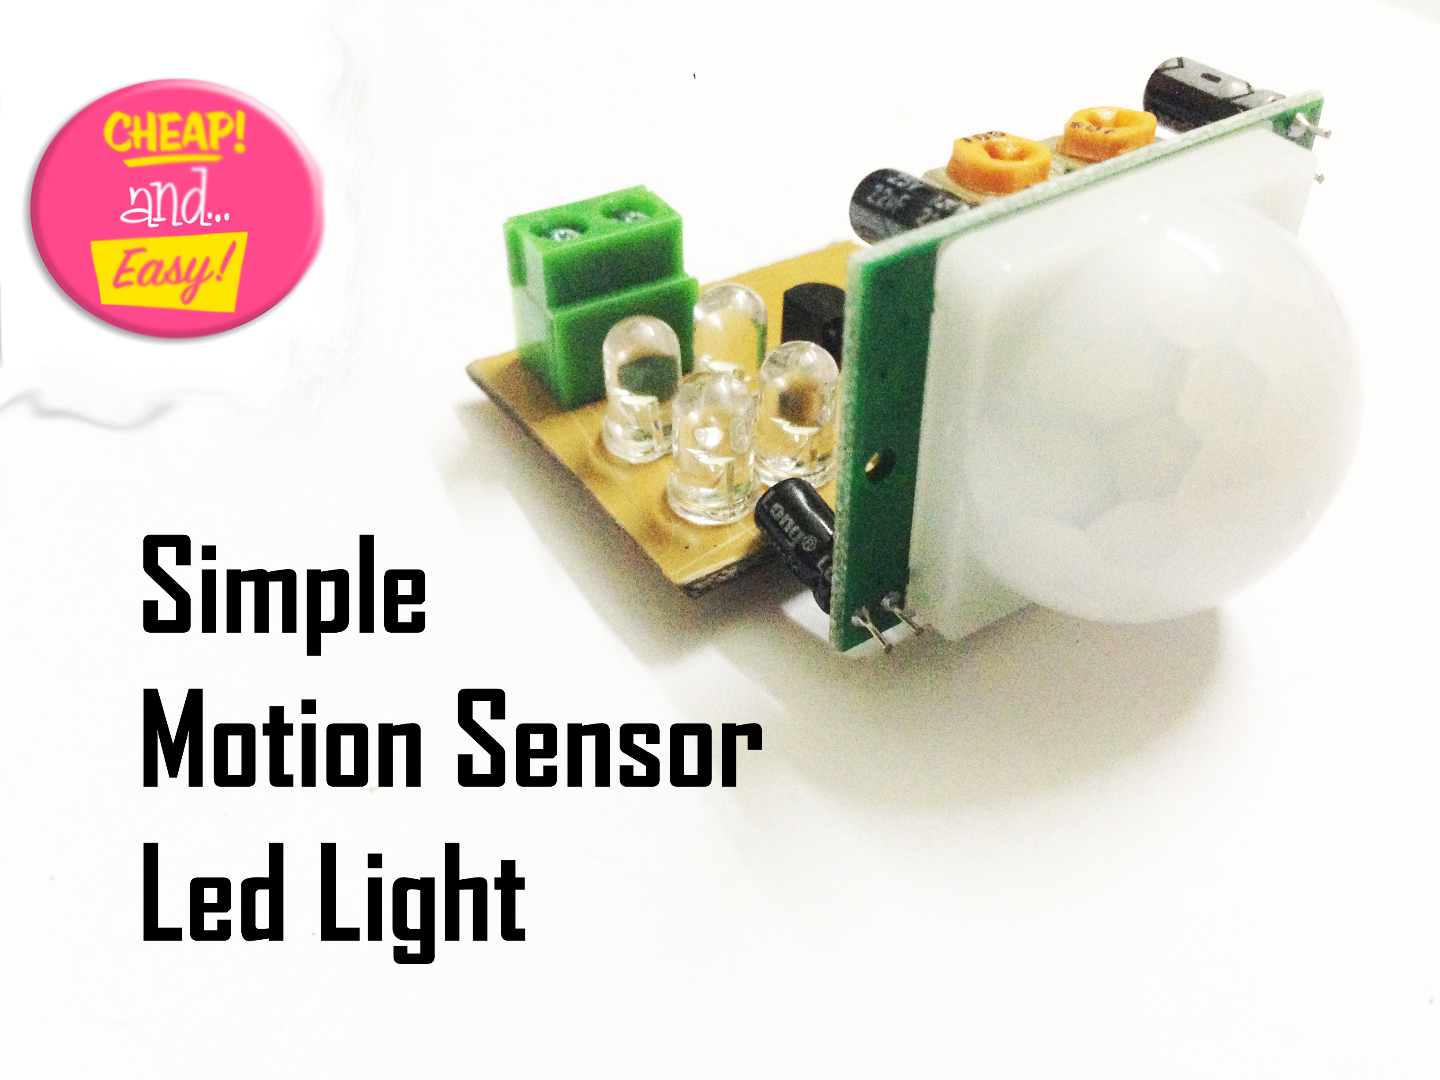 Make an Simple Motion Sensor Light! (PIR) : 13 Steps (with Pictures) -  InstructablesInstructables